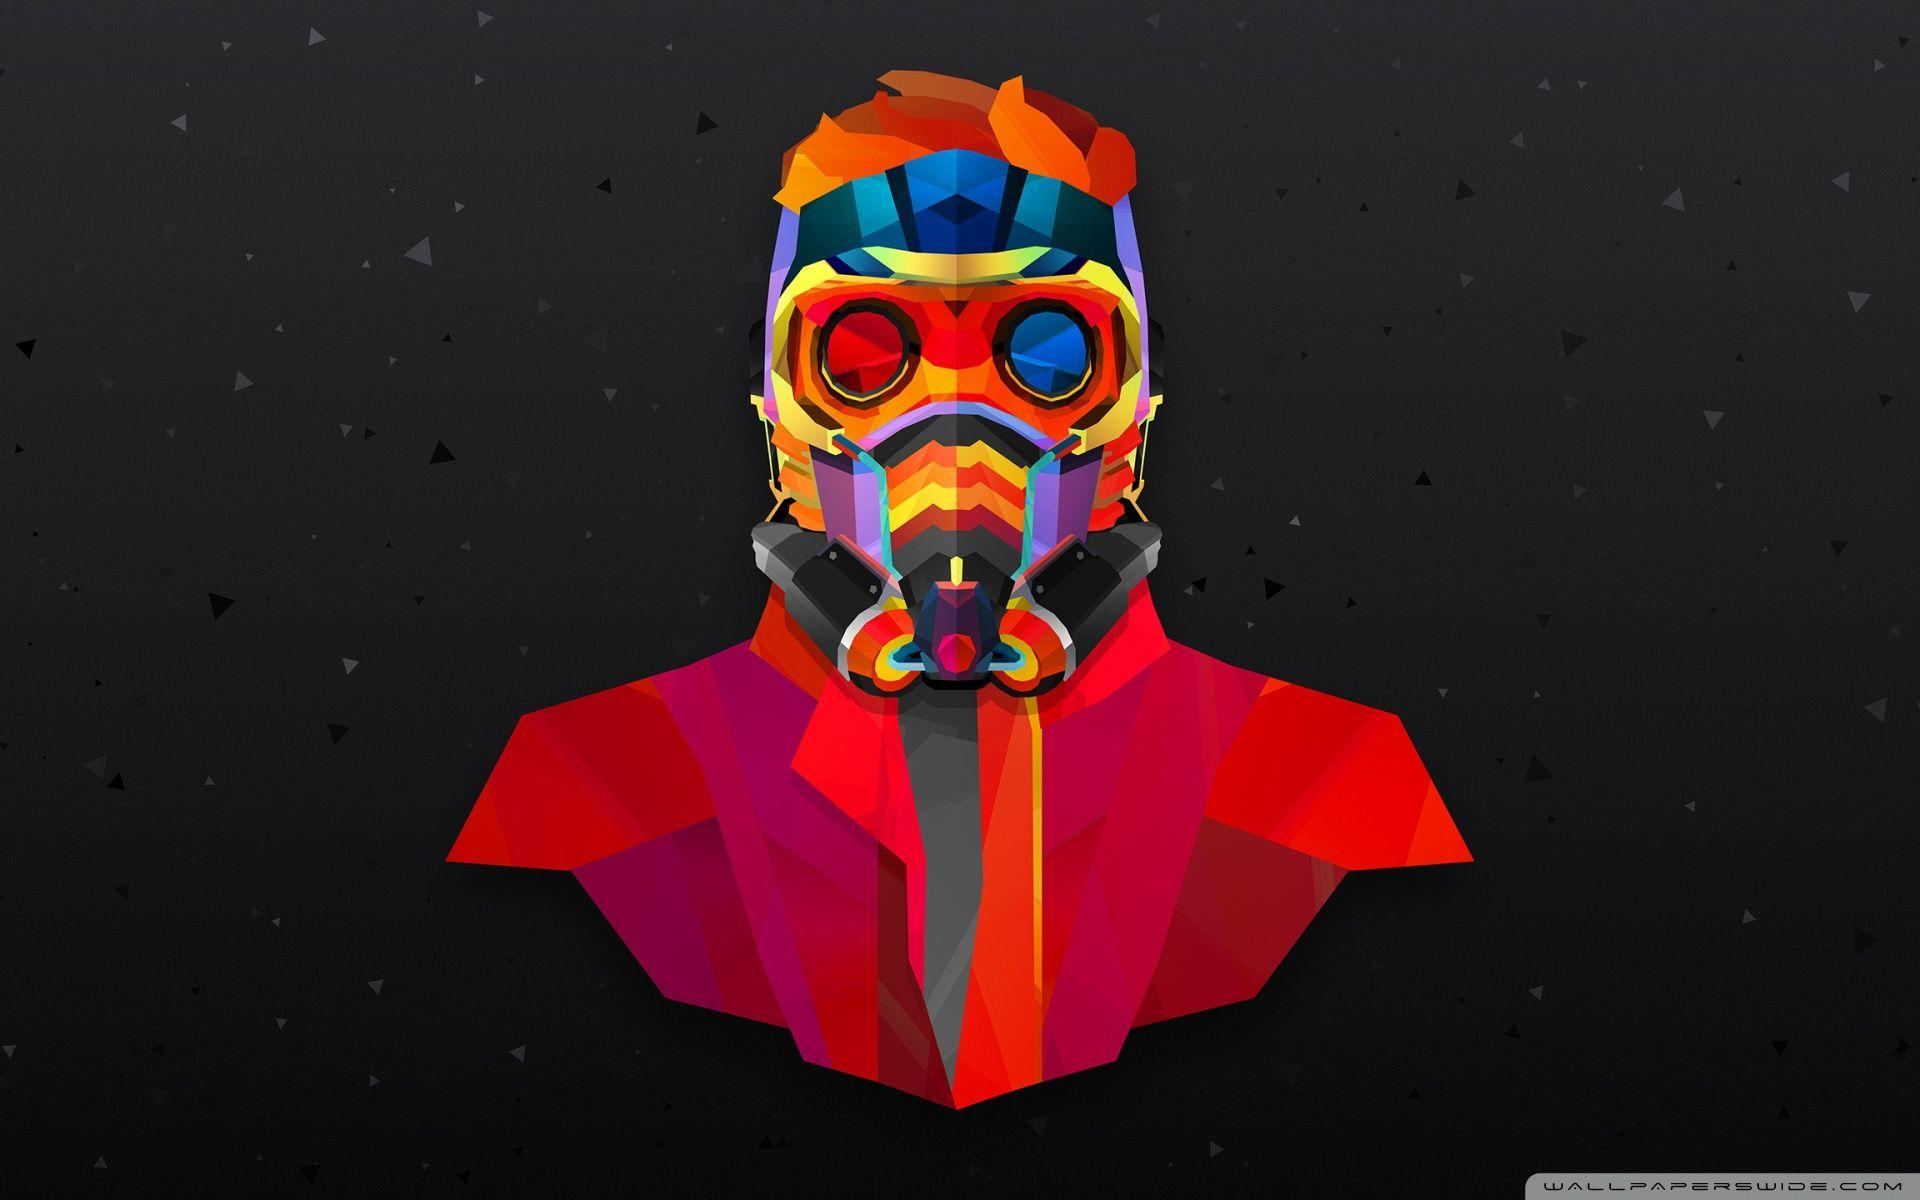 b82b495f4 Guardians Of The Galaxy Star-Lord Wallpapers - Wallpaper Cave